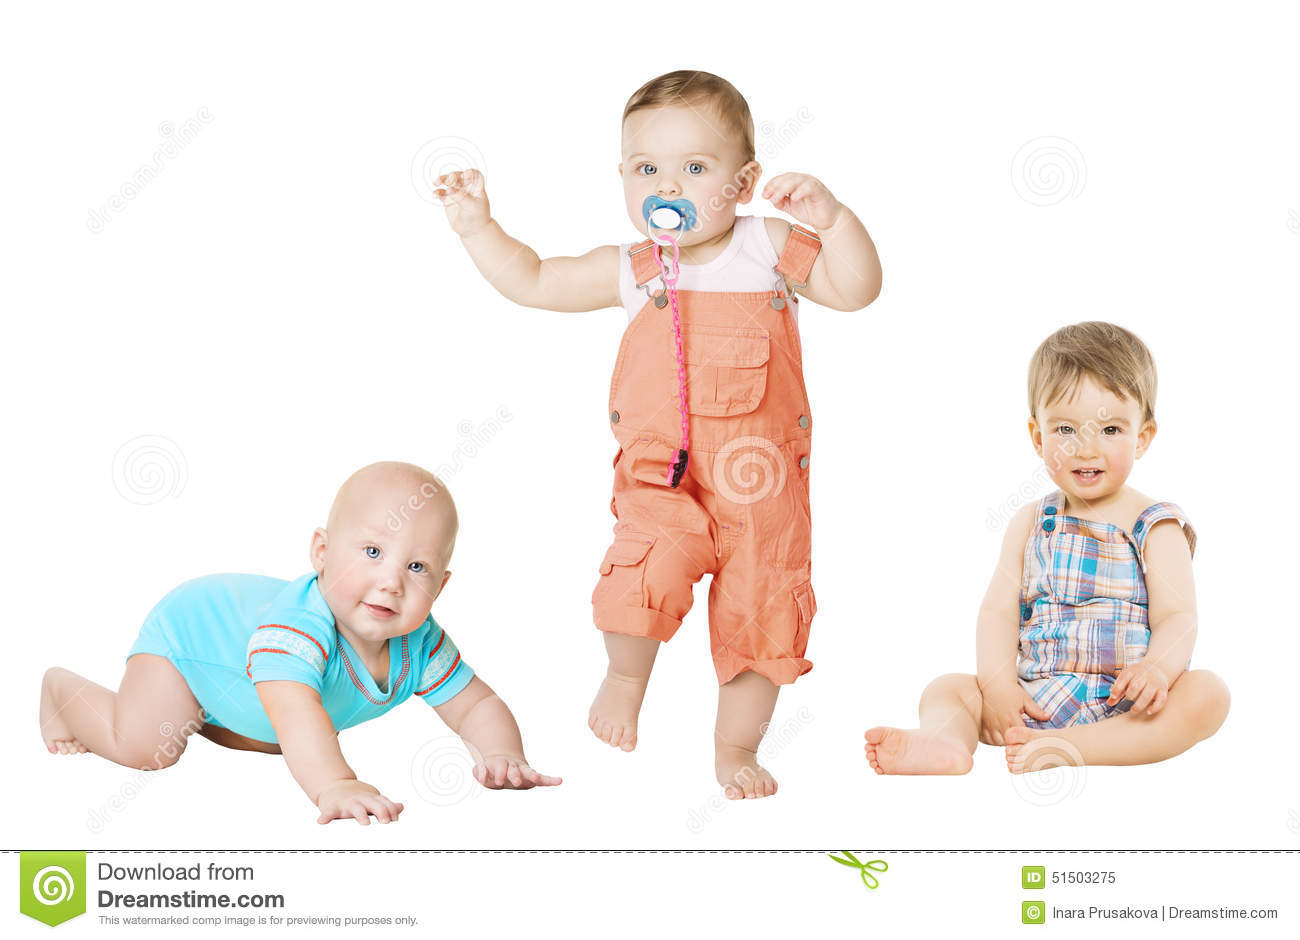 Stock Photo Children Active Growth Portrait Little Kids Baby Activity Months To Year Old Crawling Sitting Standing Boy Image51503275 on Months Of The Year Clipart